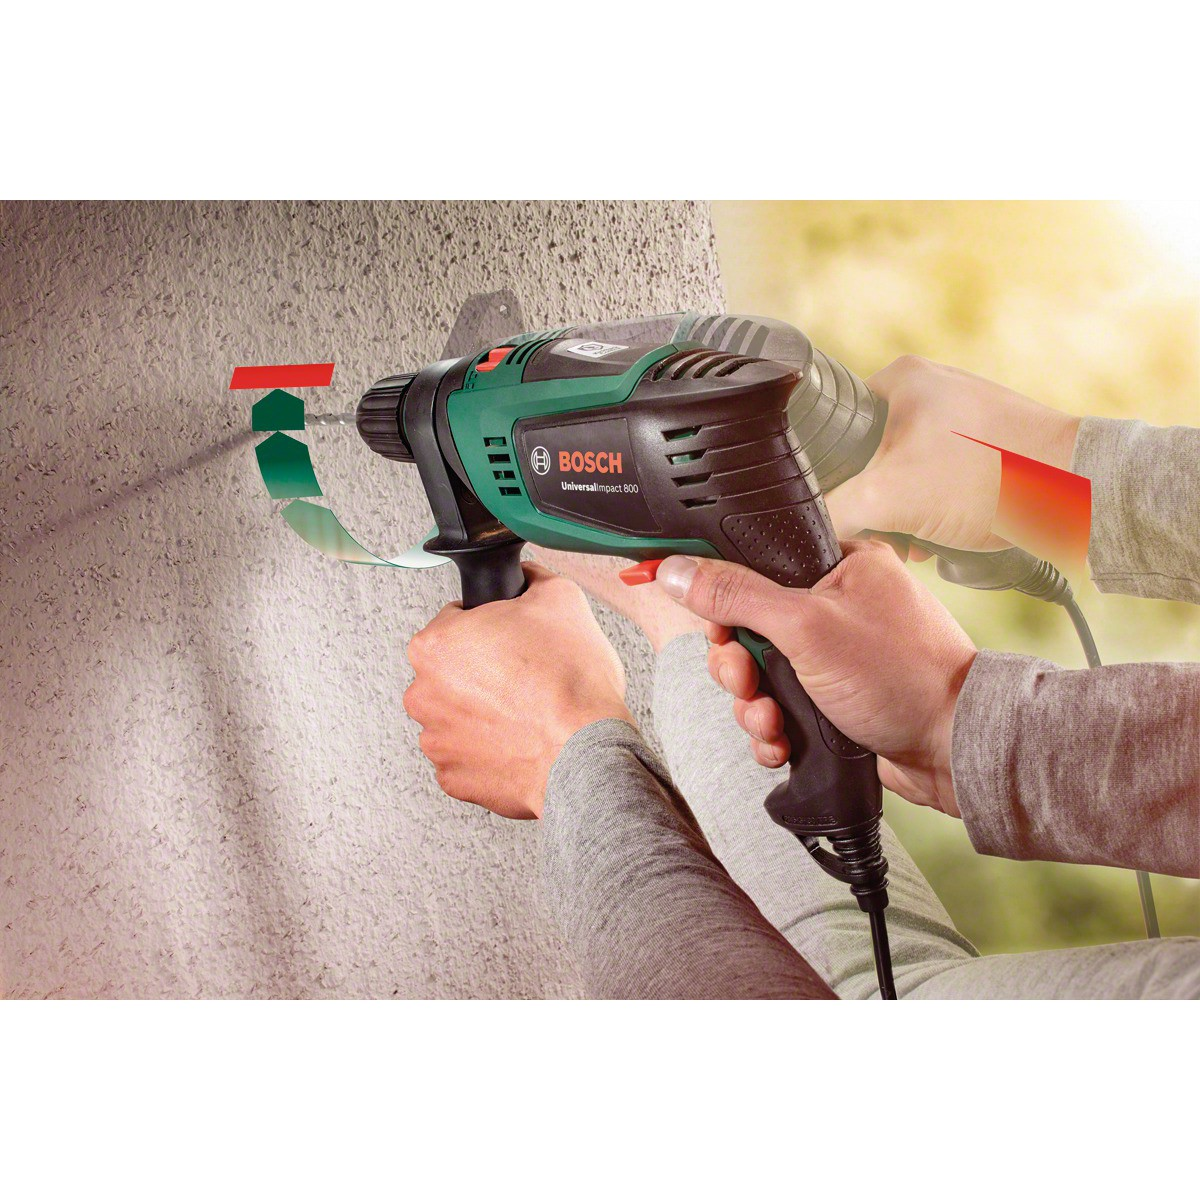 Perceuse à percussion filaire UniversalImpact 800 - 800W - Bosch